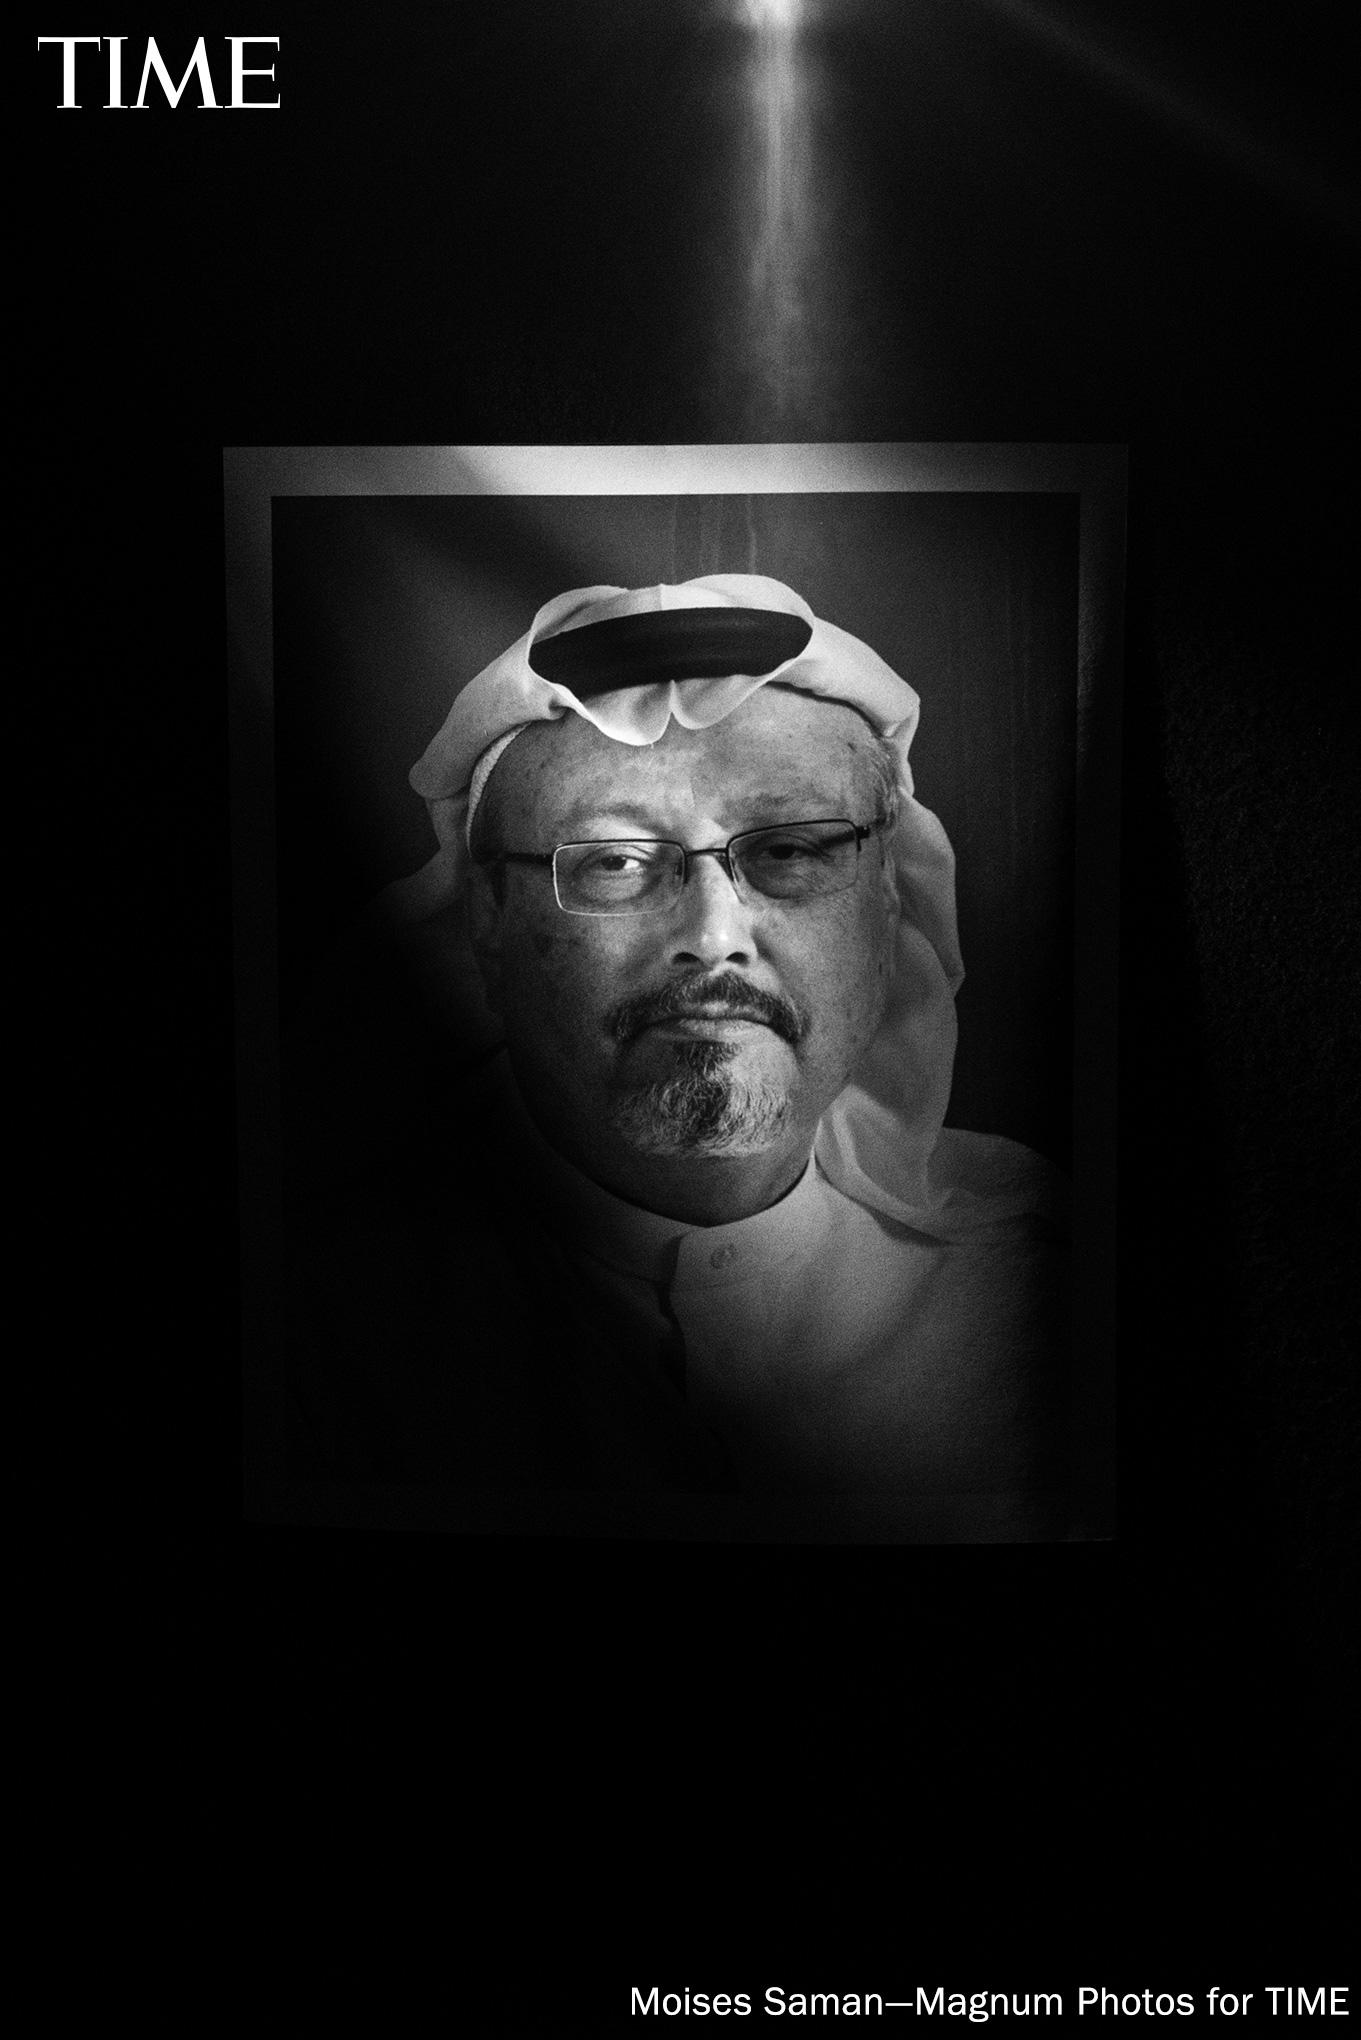 """Saudi journalist and Washington Post columnist Jamal Khashoggi was among """"The Guardians,"""" a group of journalists chosen as TIME Person of the Year 2018 on Tuesday. On October 2, Khashoggi was murdered by agents of Saudi Arabia inside its Istanbul consulate, while his fiancée waited for him outside. (Moises Saman--Magnum Photos for TIME [Source photo: Alamy])"""